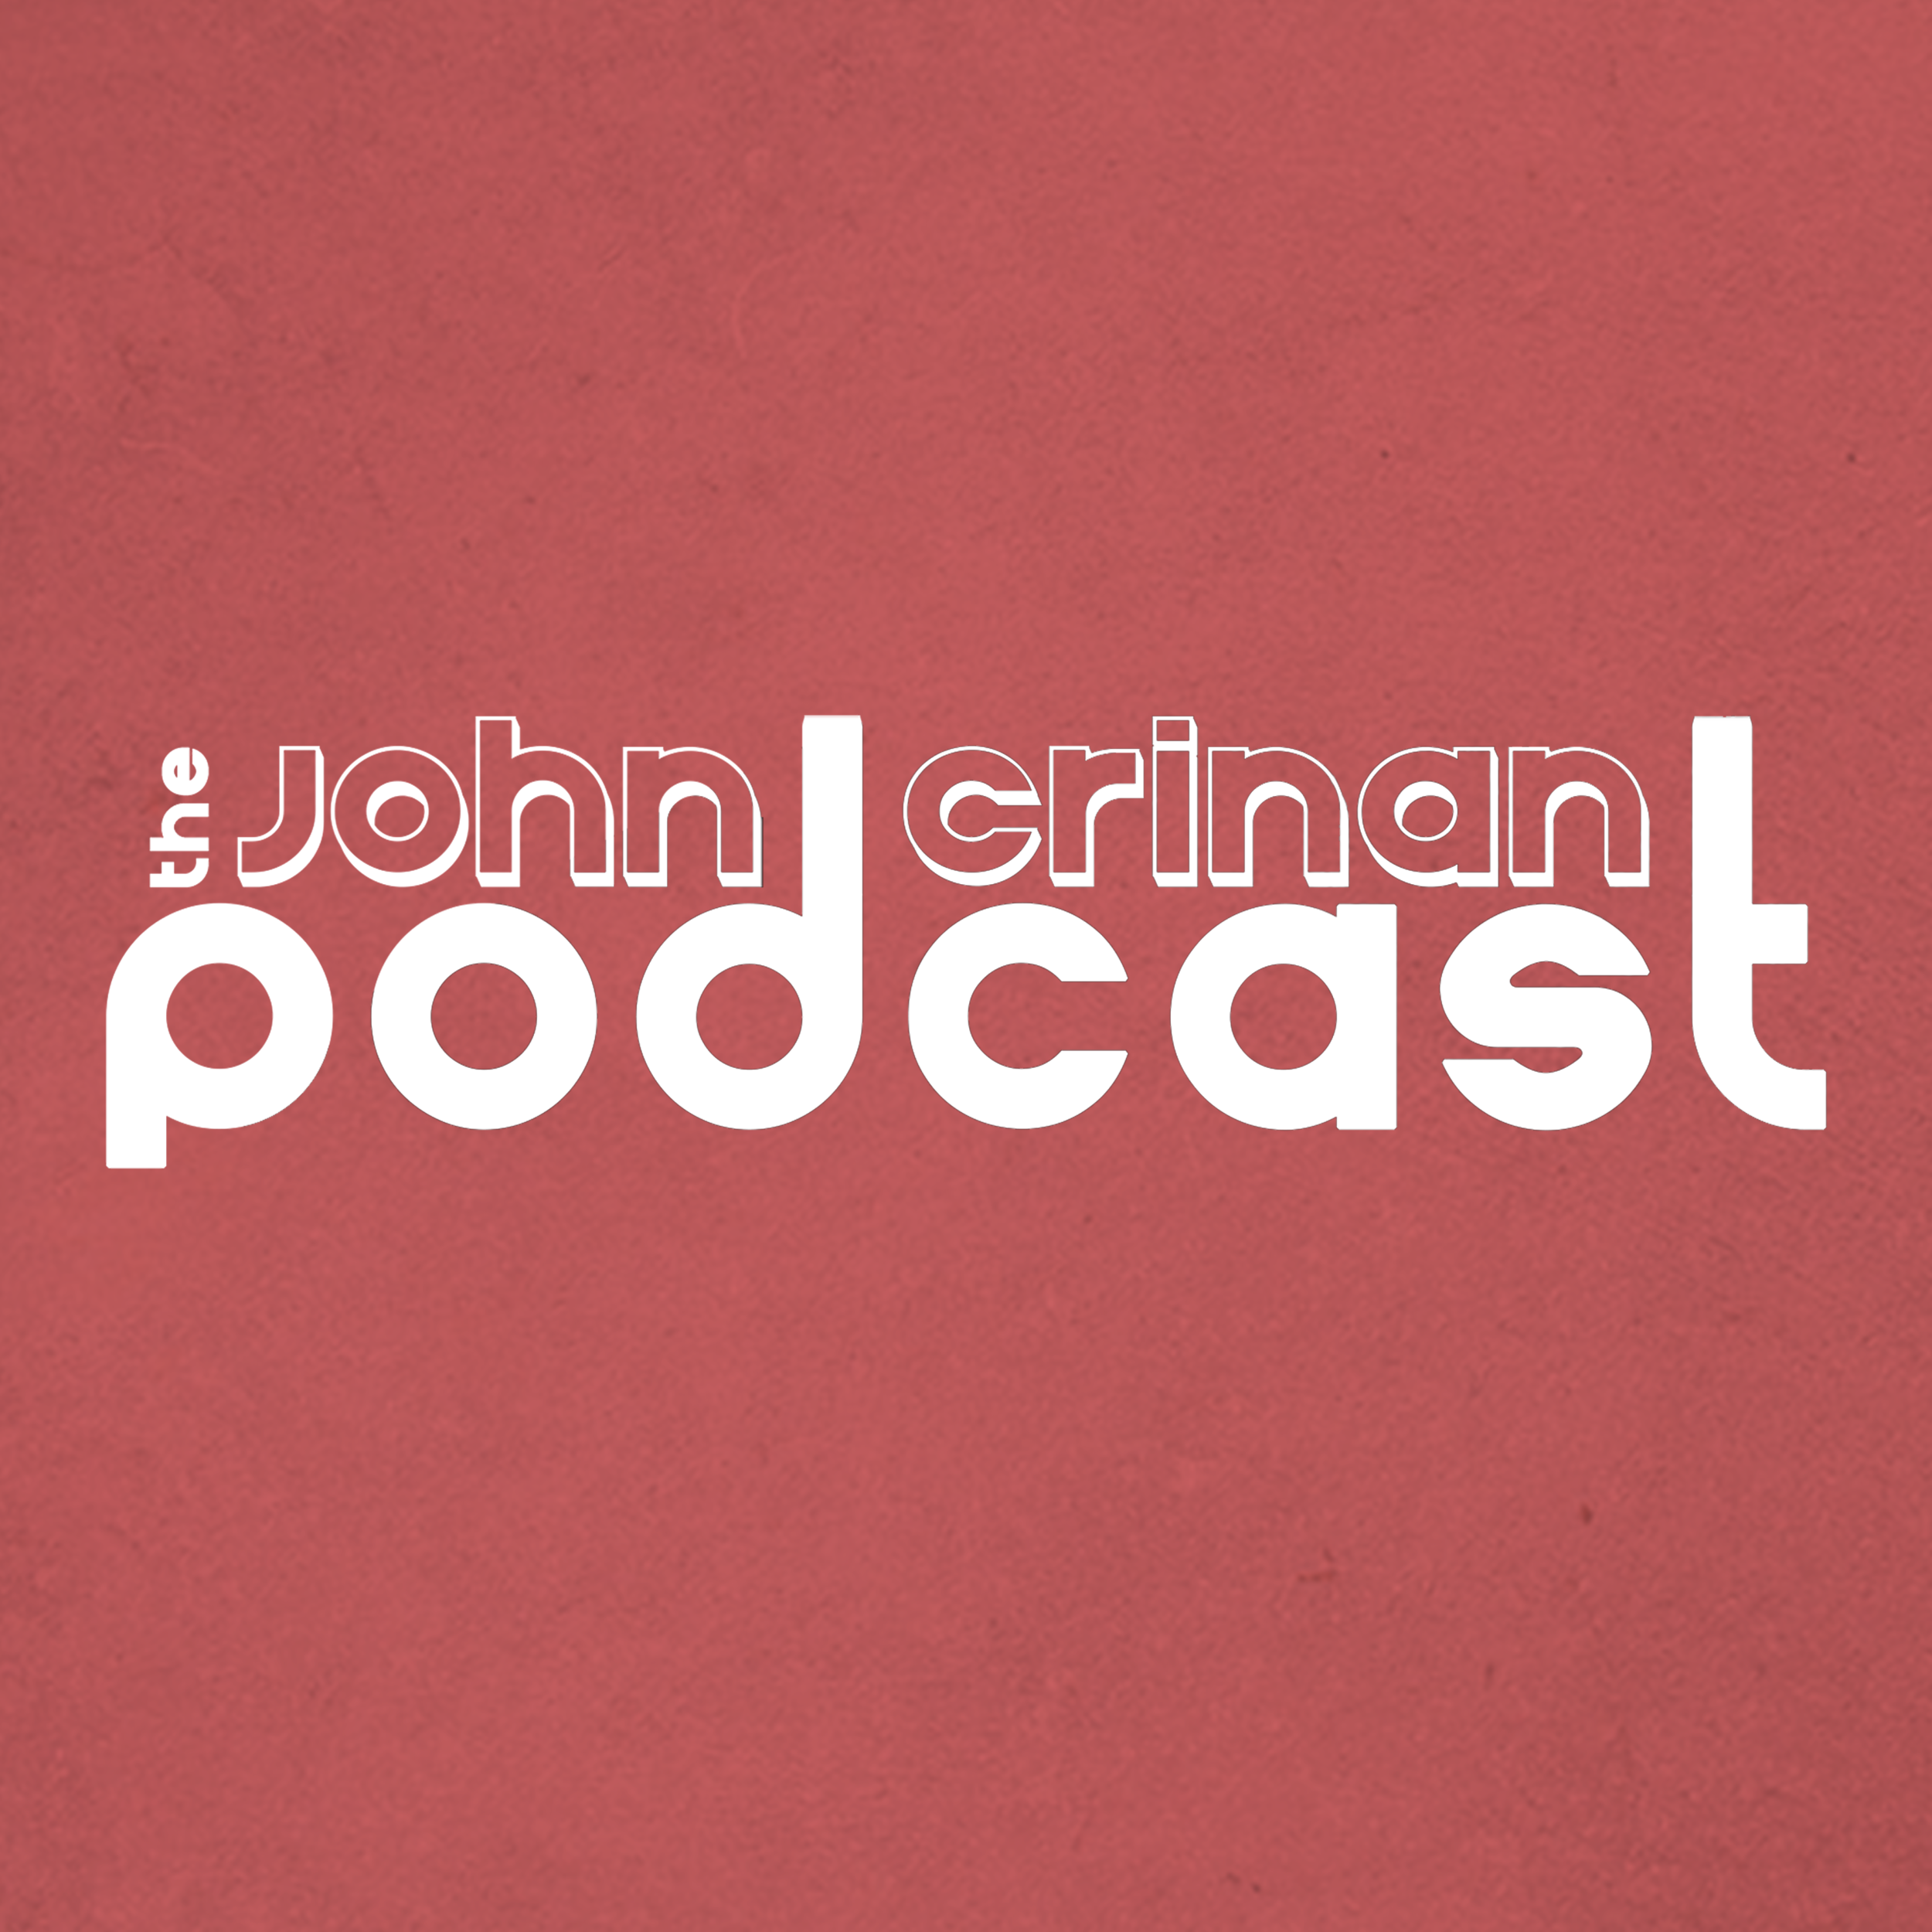 Every episode of  The John Crinan Podcast  sees me chatting with a new creator about their work, their craft, and the difficult business of making stuff and getting shit done. A new episode every fortnight.  Listen on:   iTunes    Spotify